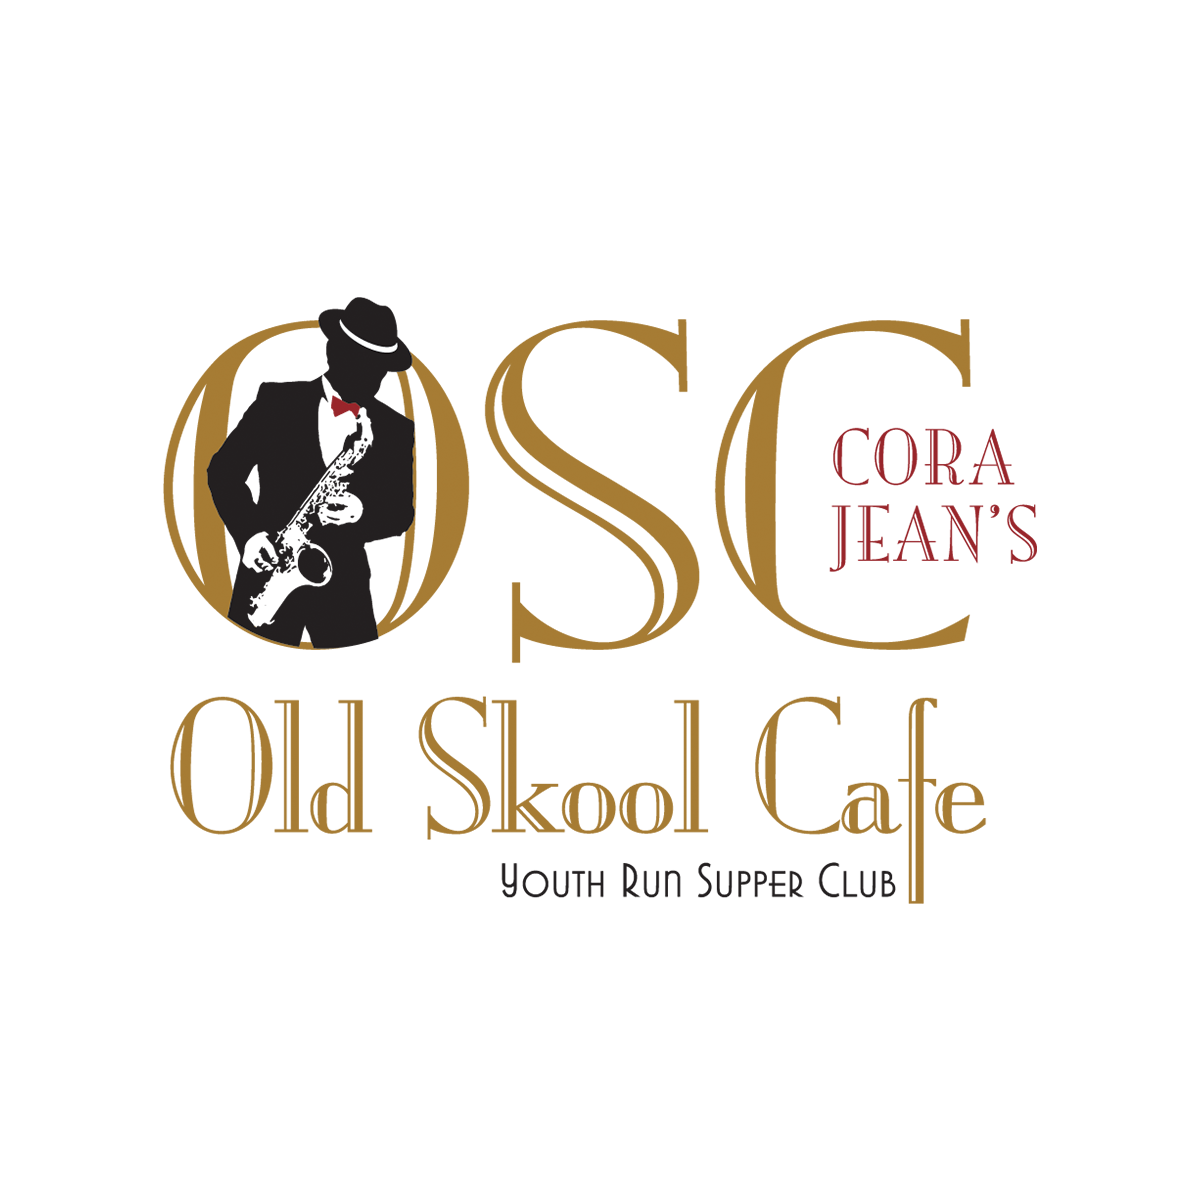 - Old Skool CafeNonprofit supper club run by at-risk youth offering a global soul food menu in a 1940s-inspired setting.